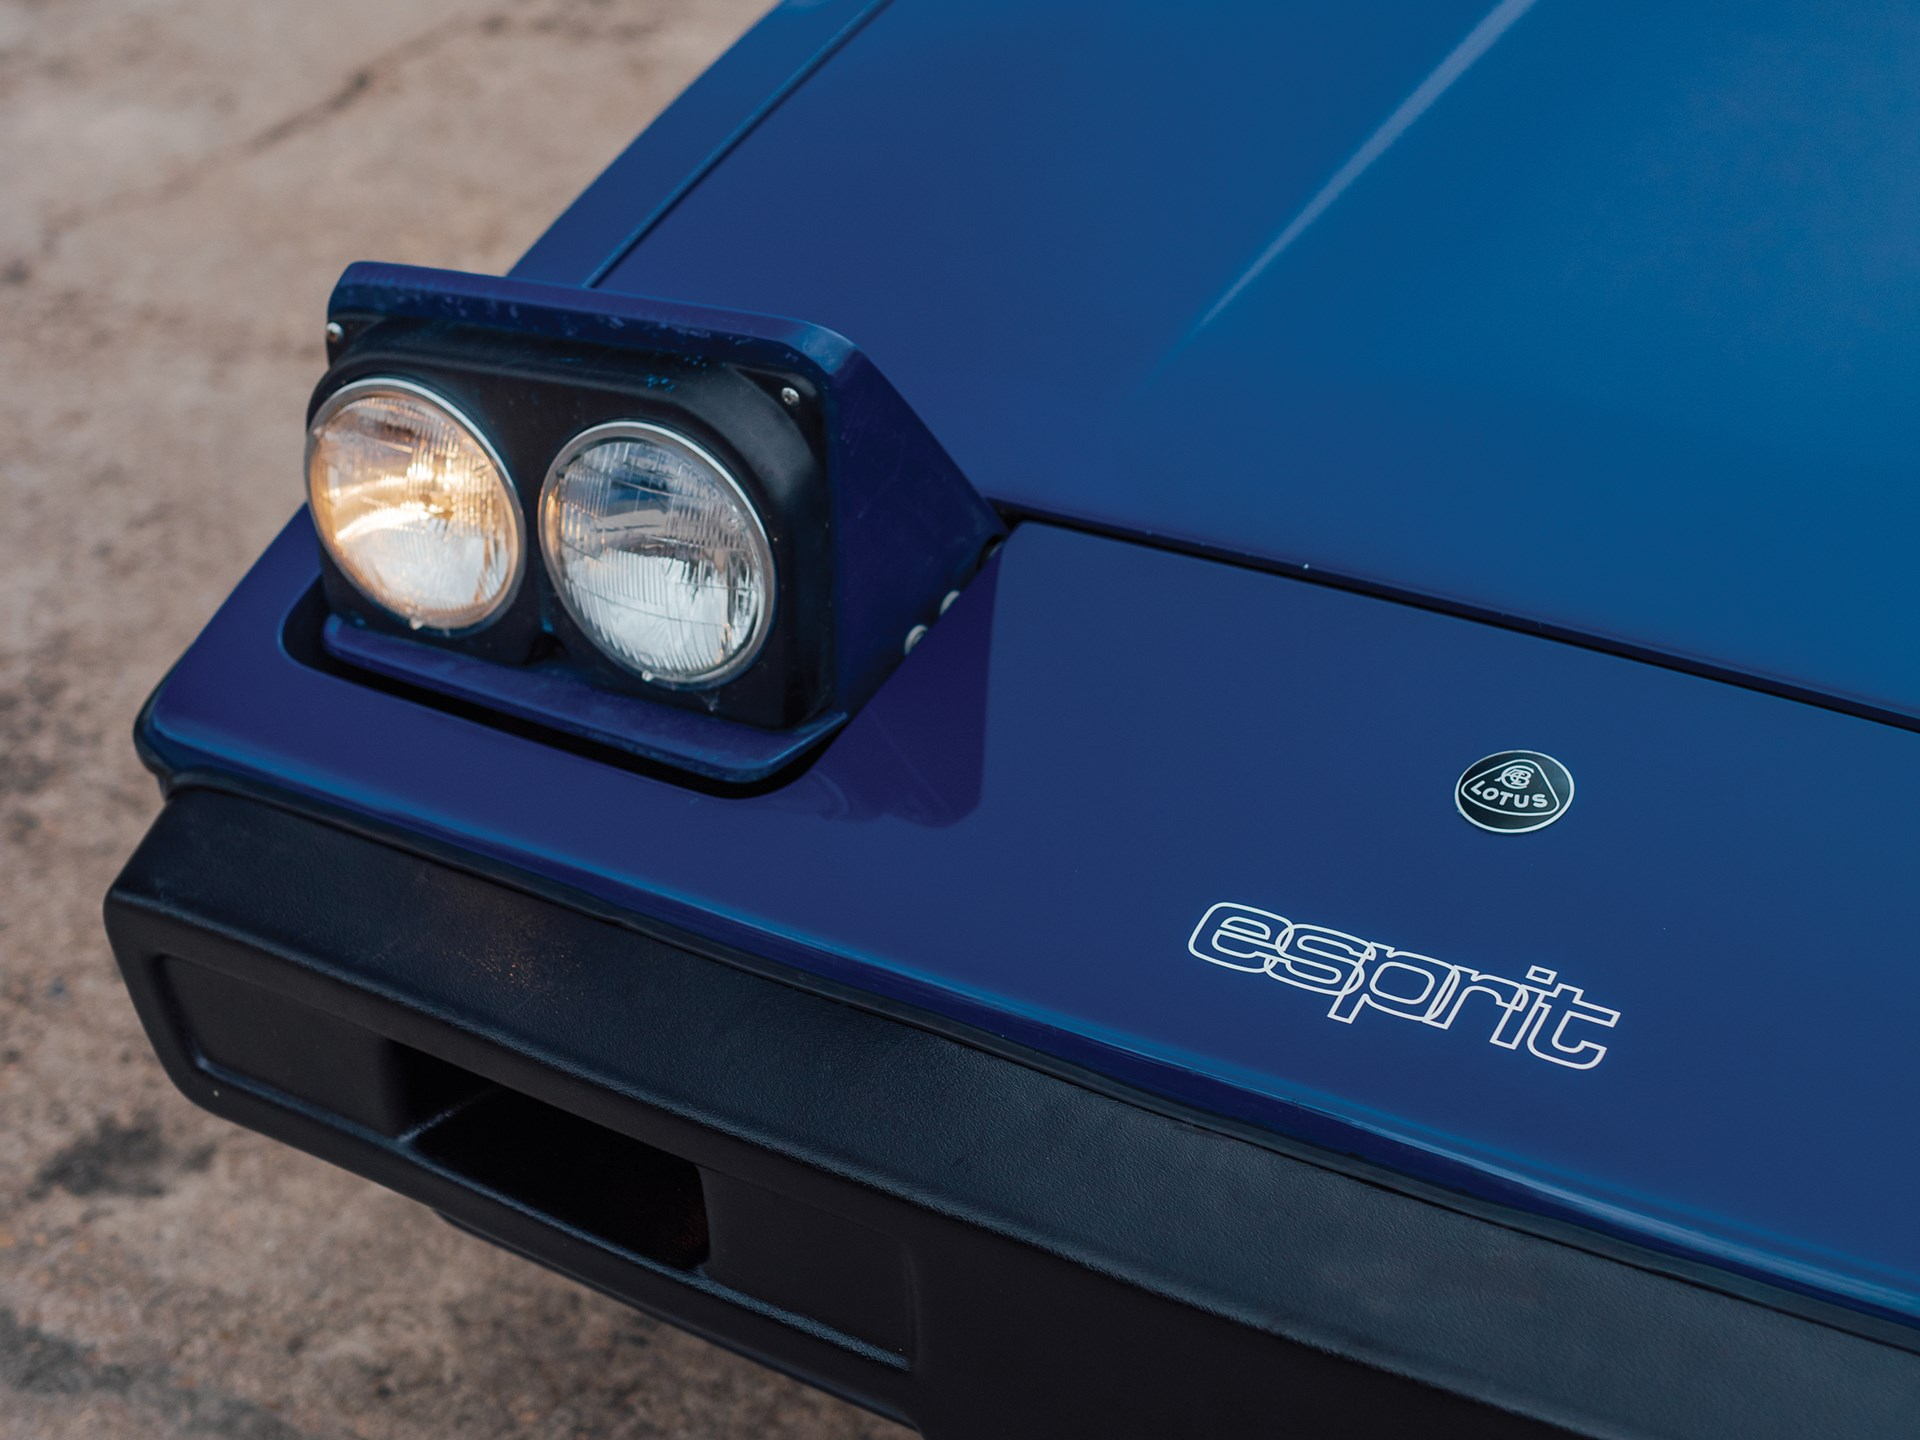 1977 Lotus Esprit Series 1 headlight detail